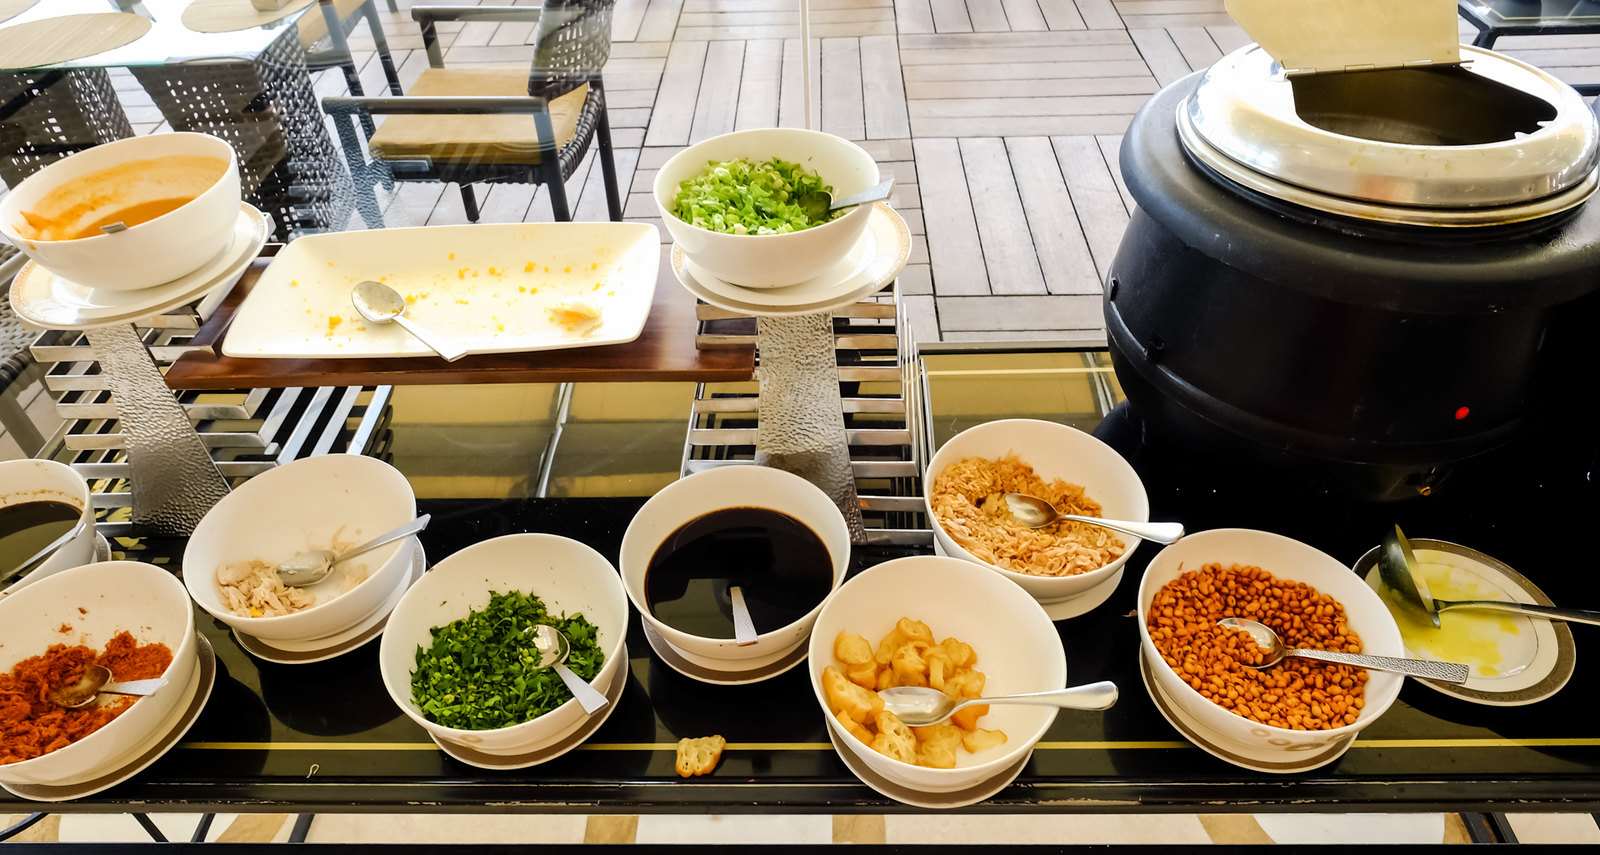 Congee and condiments